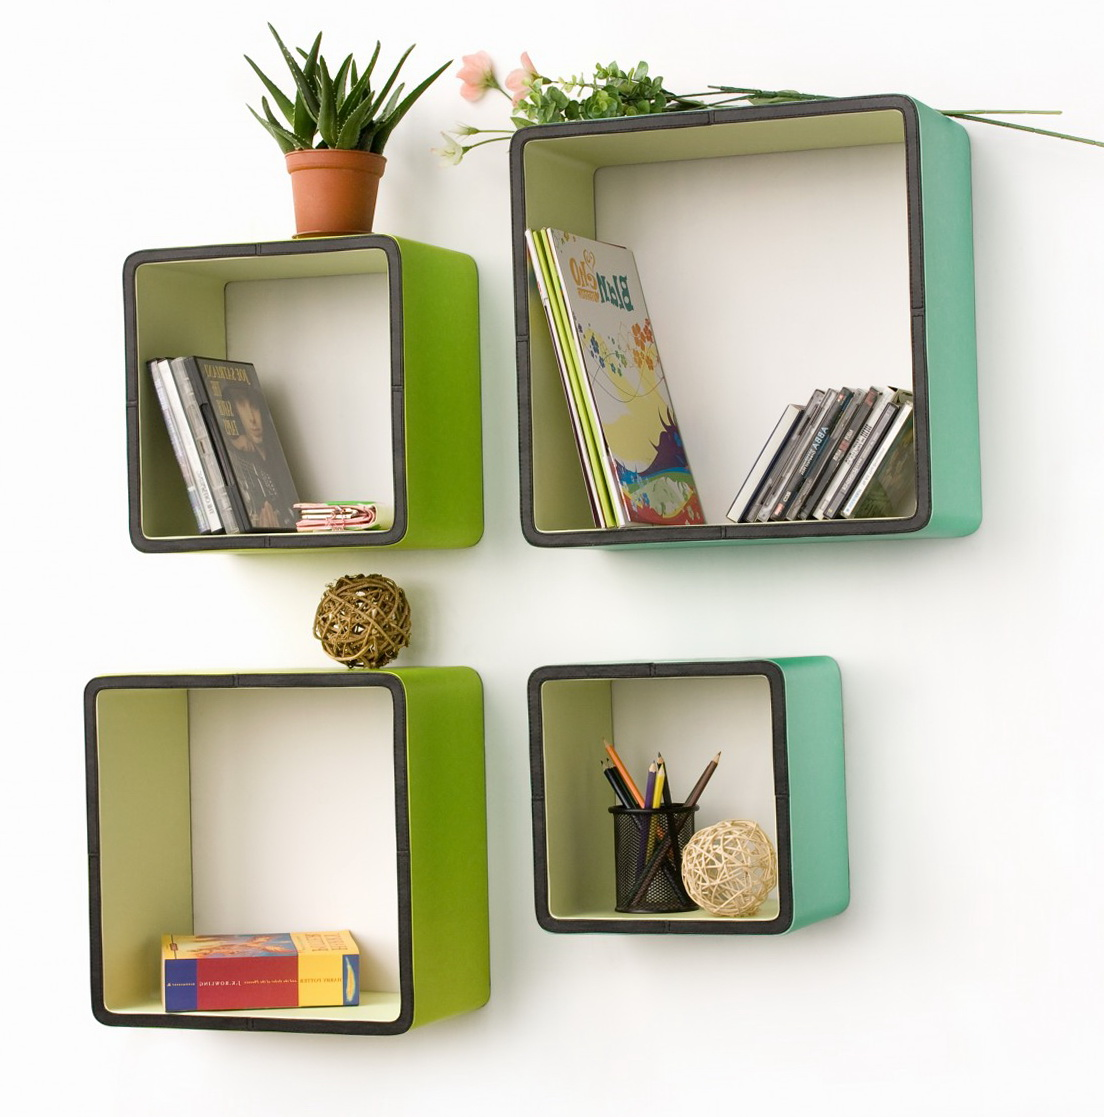 Decorative Wall Shelves For Bedroom